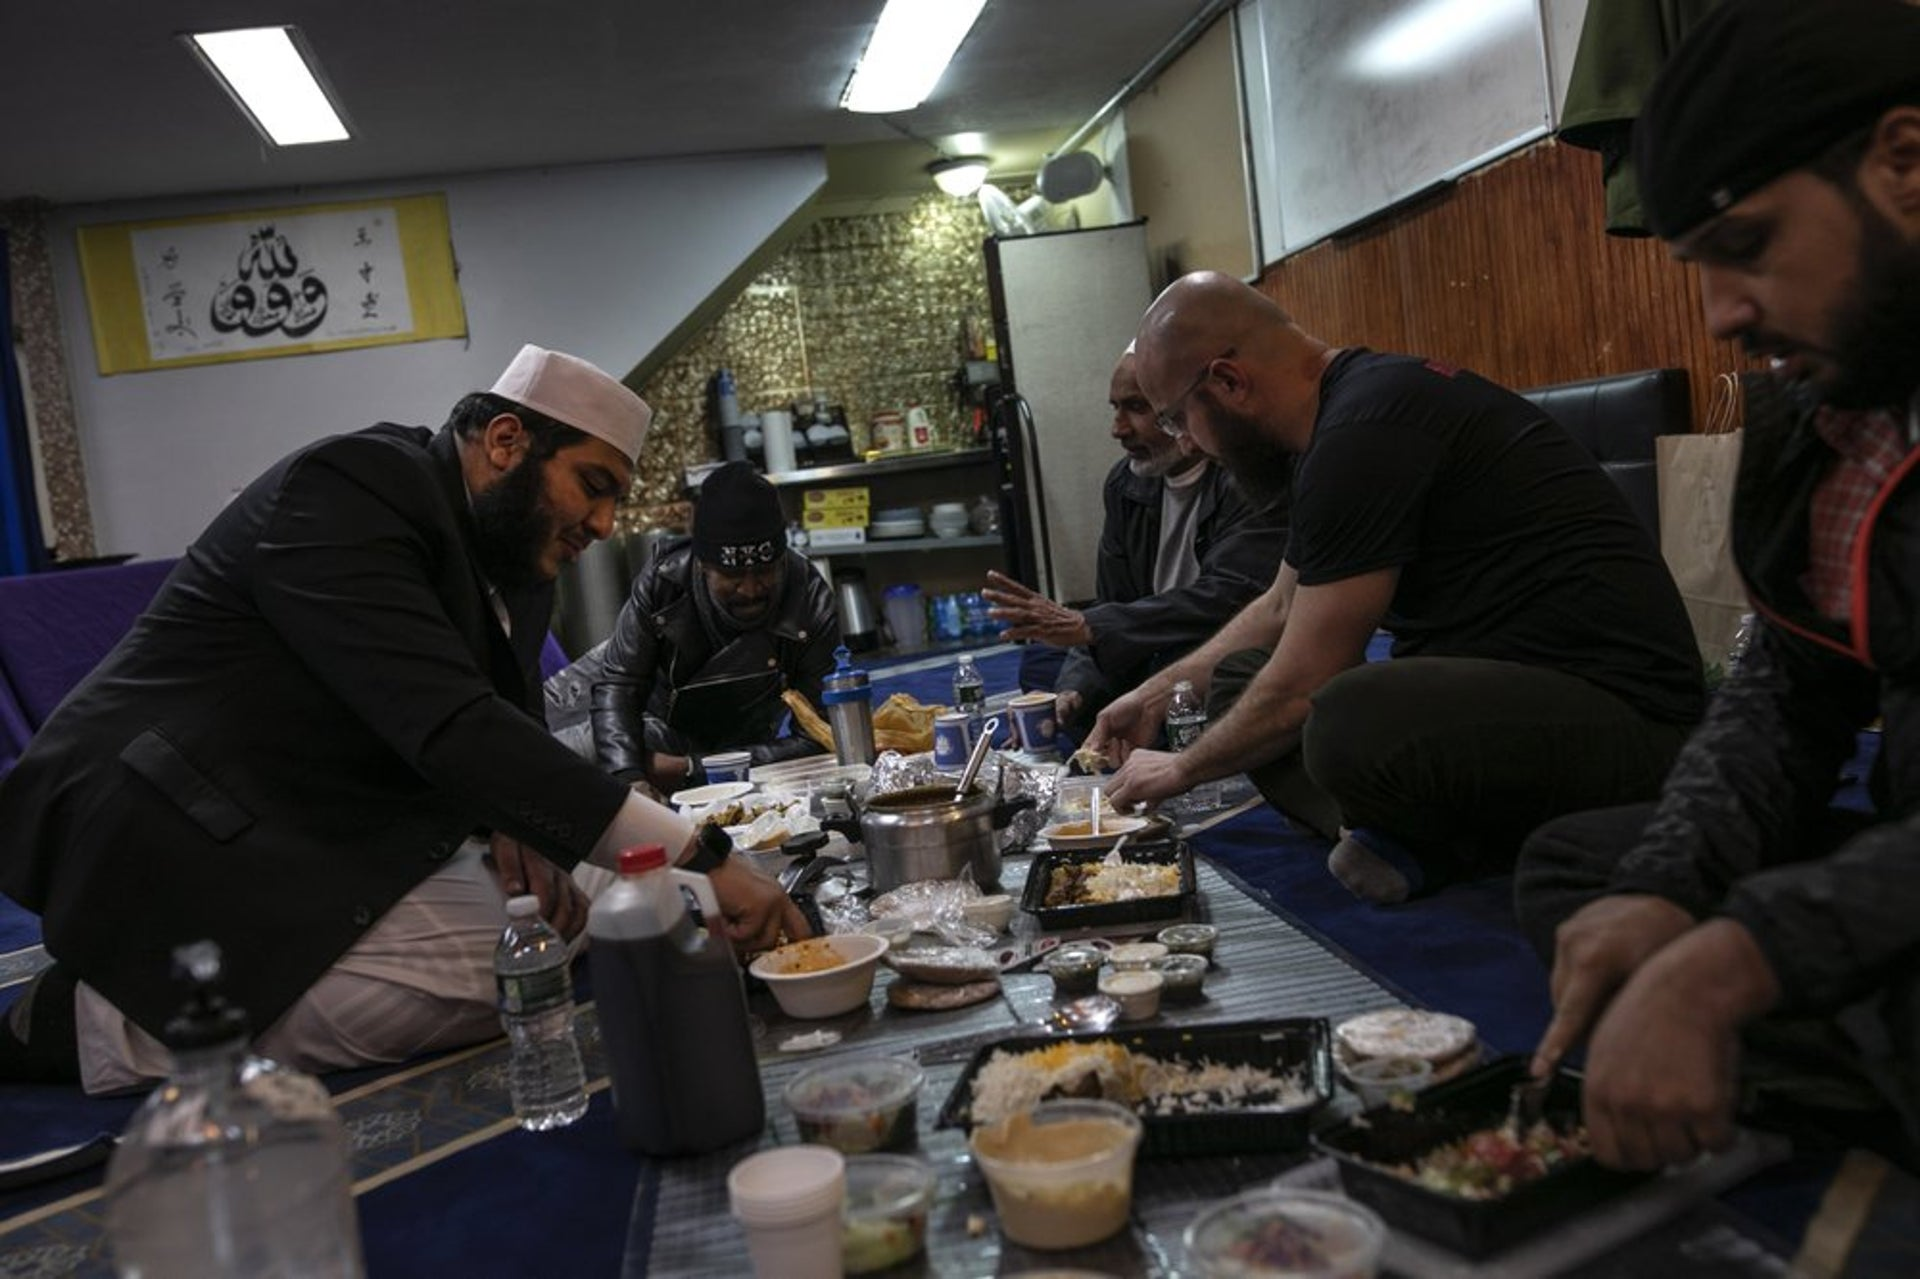 Ahmed Soliman, right, together with Mohamed Bahe, second right, end their day of fasting over a meal with Imam Abdullah Salem, left, between volunteering with Muslims Giving Back.